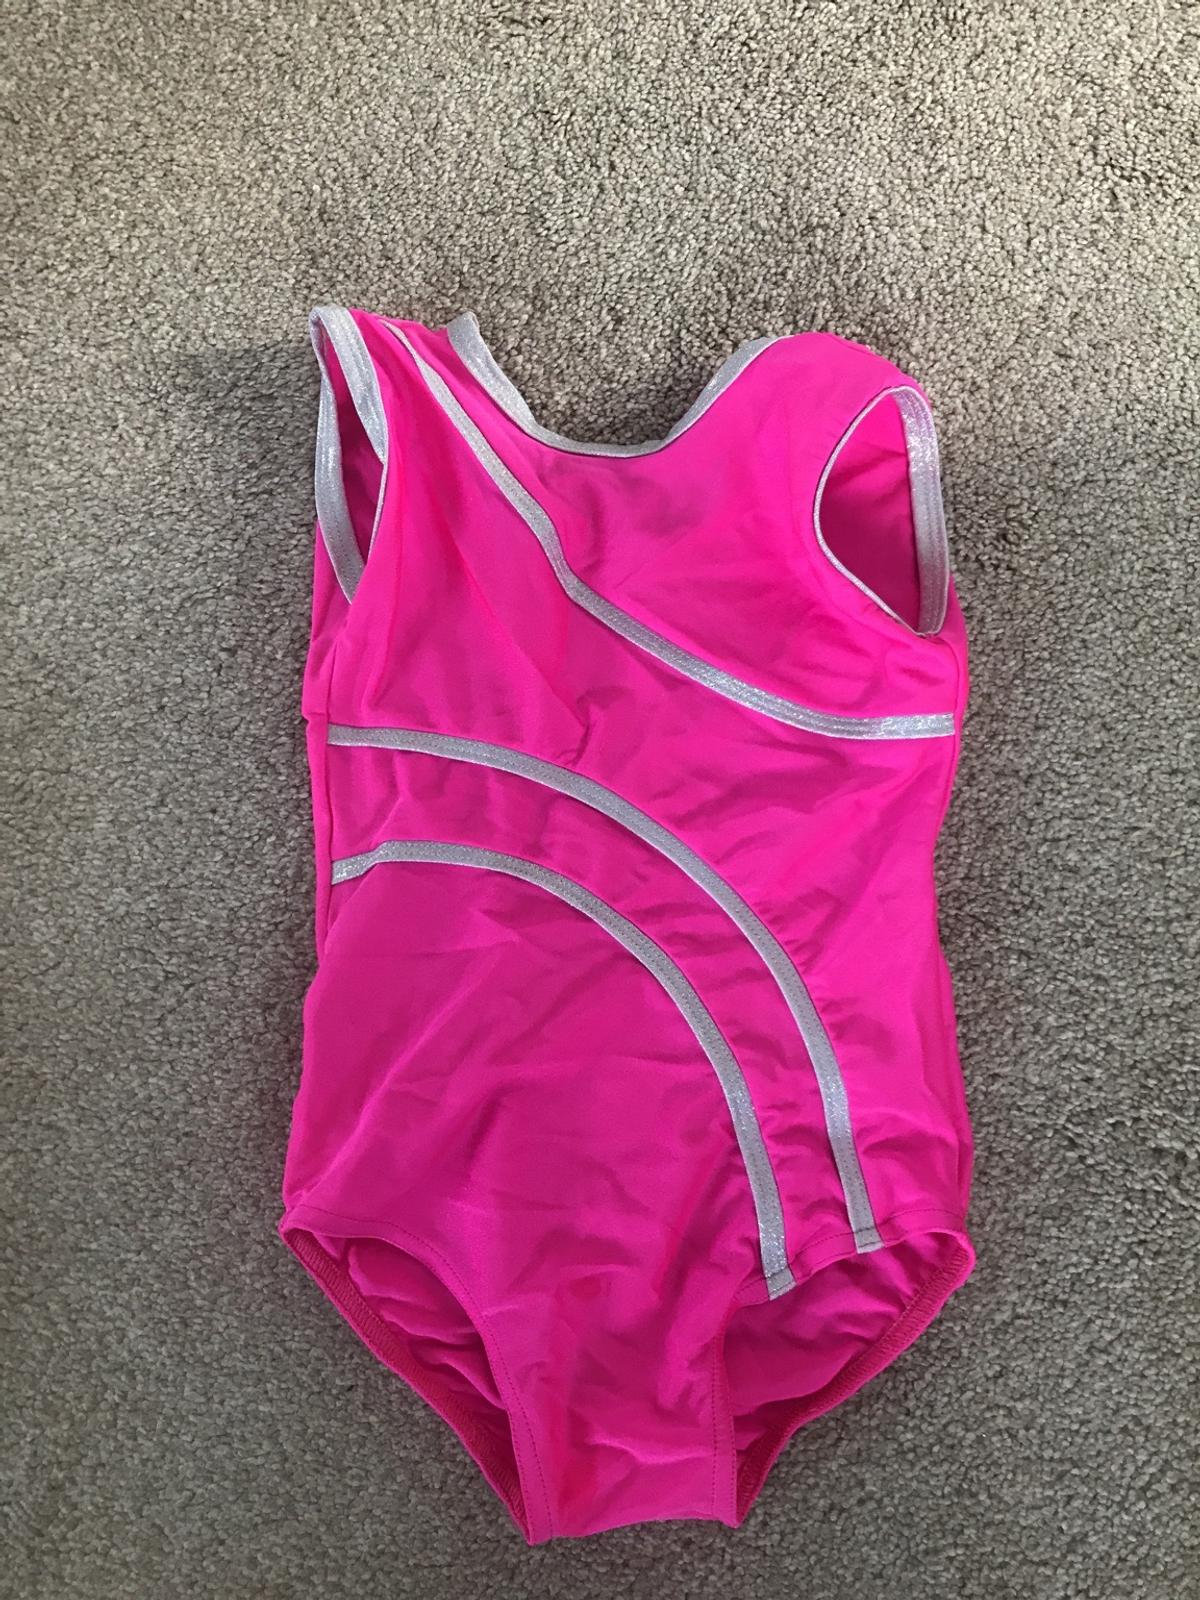 Size 1 Tappers and pointers leotard Lovely pink and sparkly silver  Can post extra £2.00